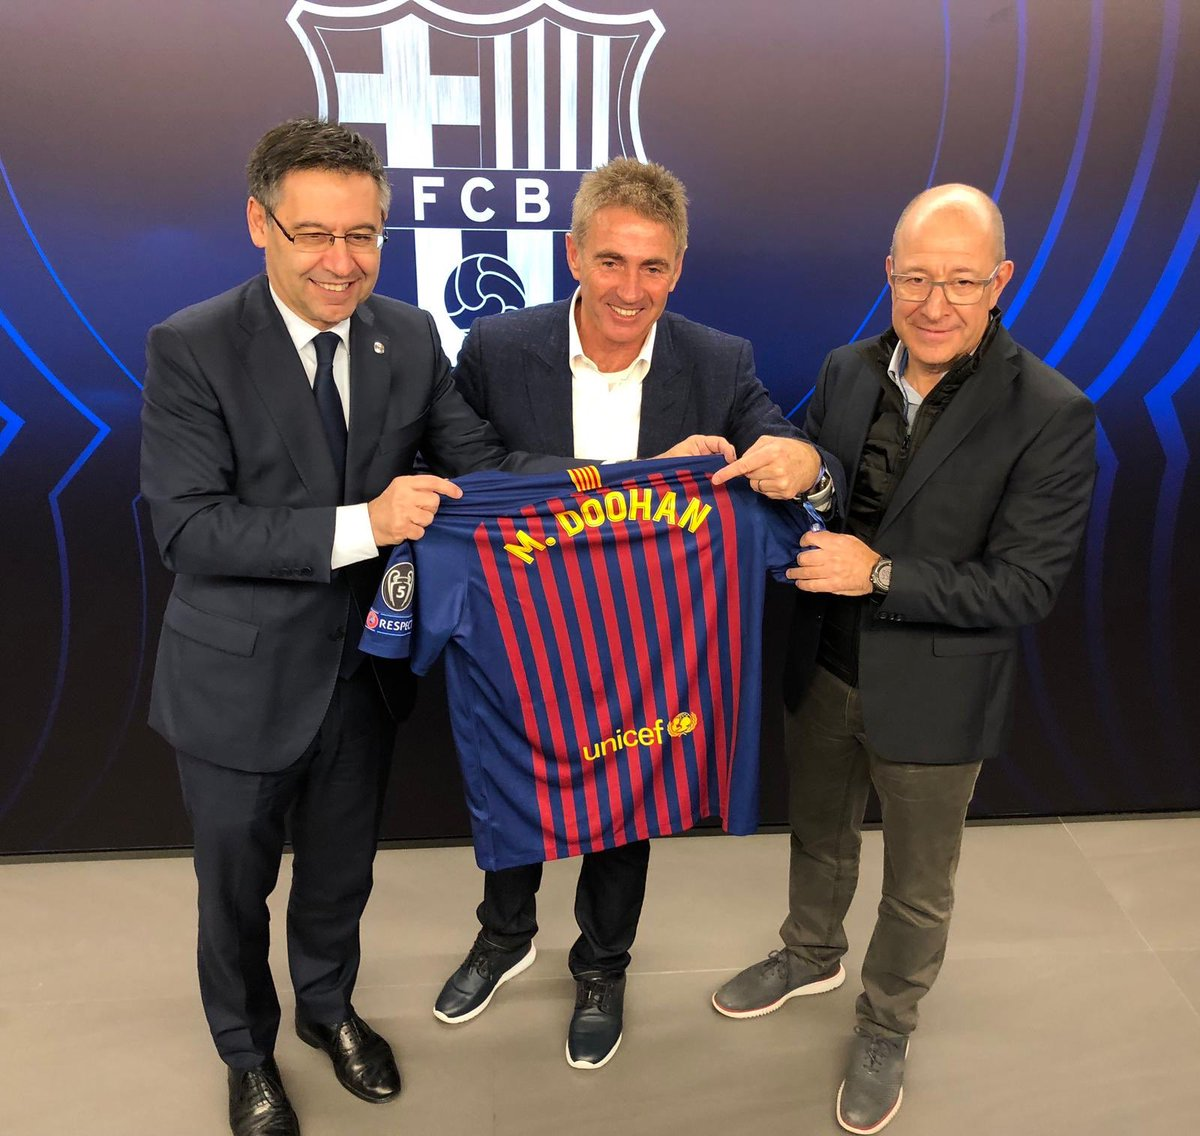 ⚽️ @micksdoohan is the special guest tonight to the @FCBarcelona Champions League match against Tottenham at the Camp Nou 👌